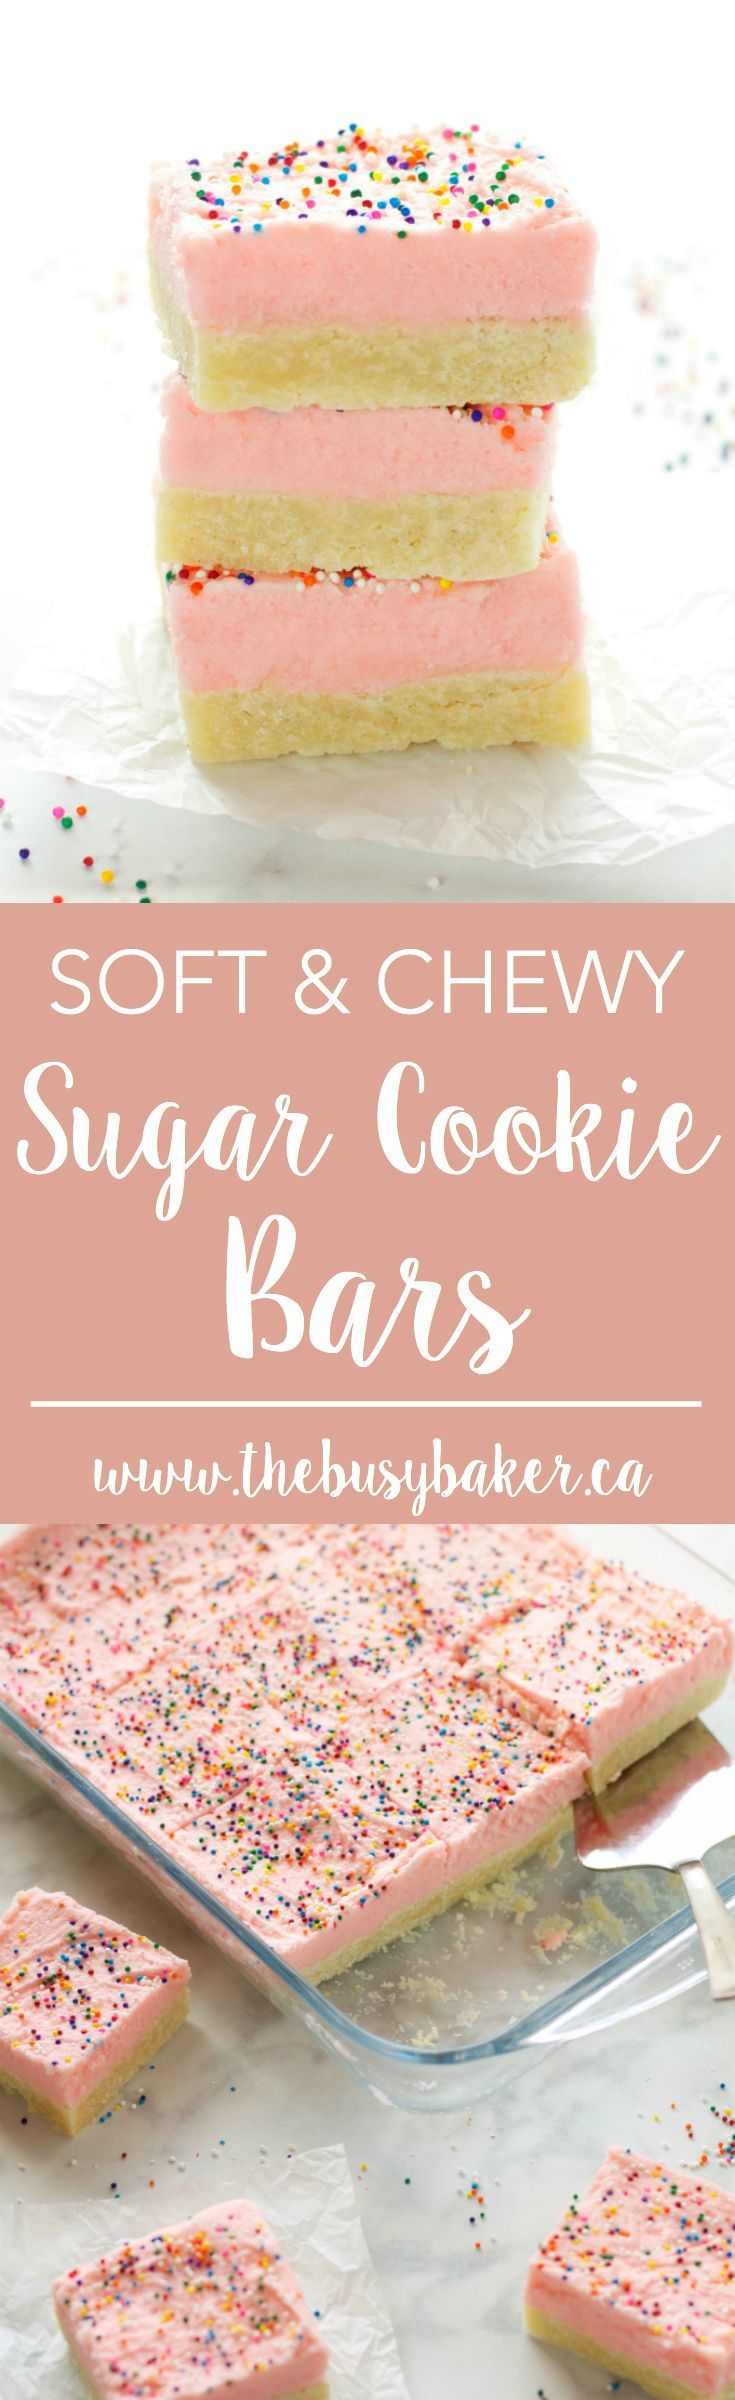 These Soft and Chewy Sugar Cookie Bars are the perfect kid-friendly dessert that the whole family will love! Recipe from thebusybaker.ca!